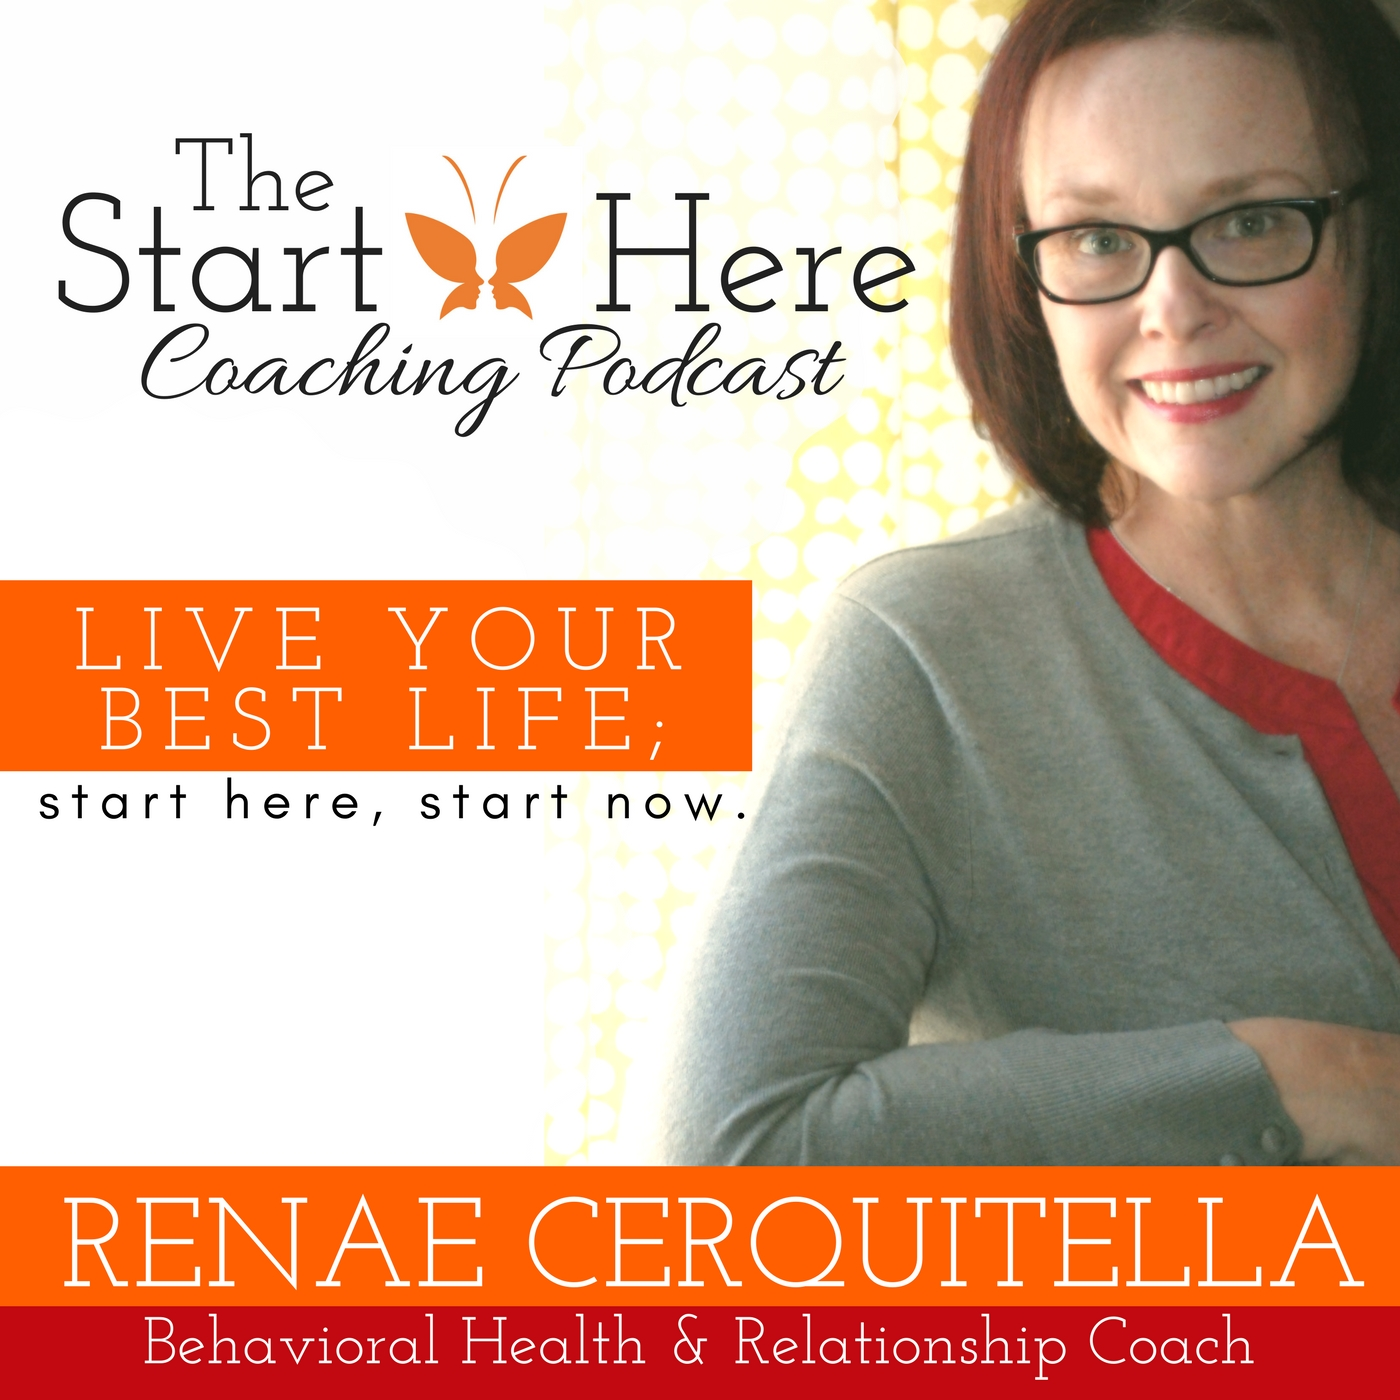 Start Here Coaching Services Podcast show art